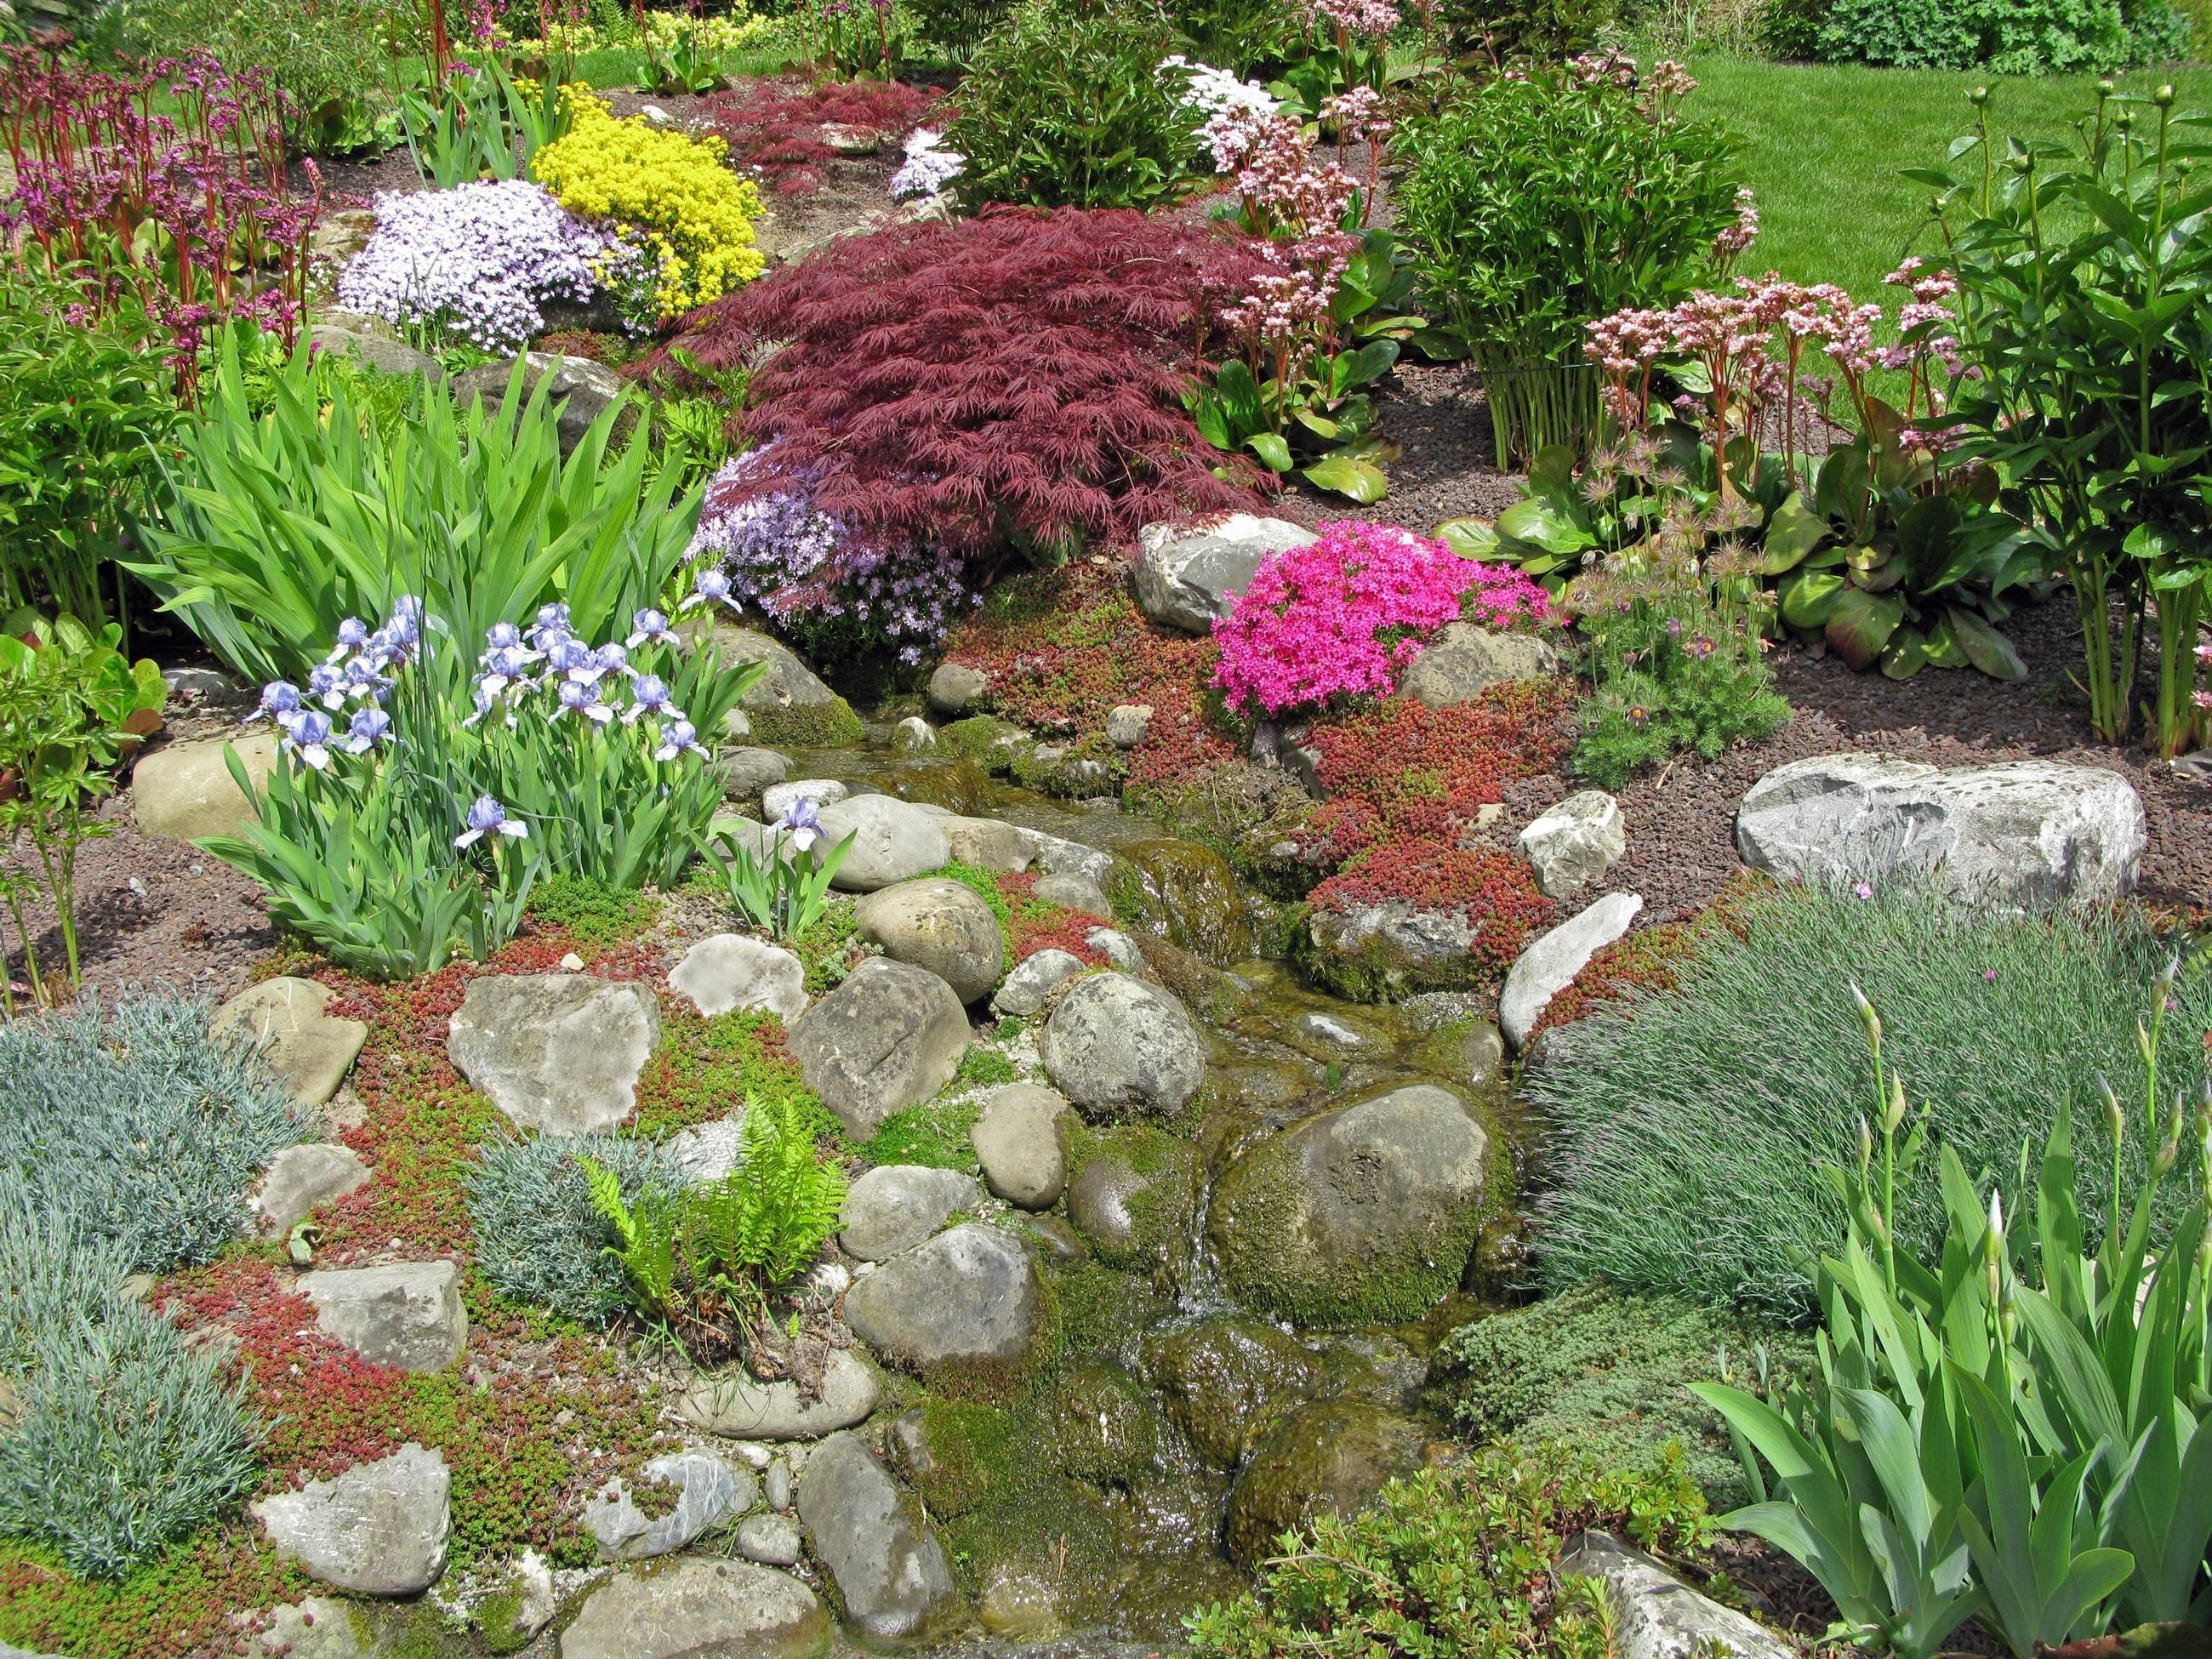 Problem areas call for landscape solutions, including rock garden design, which is an attractive, practical solution where landscaping often fails.